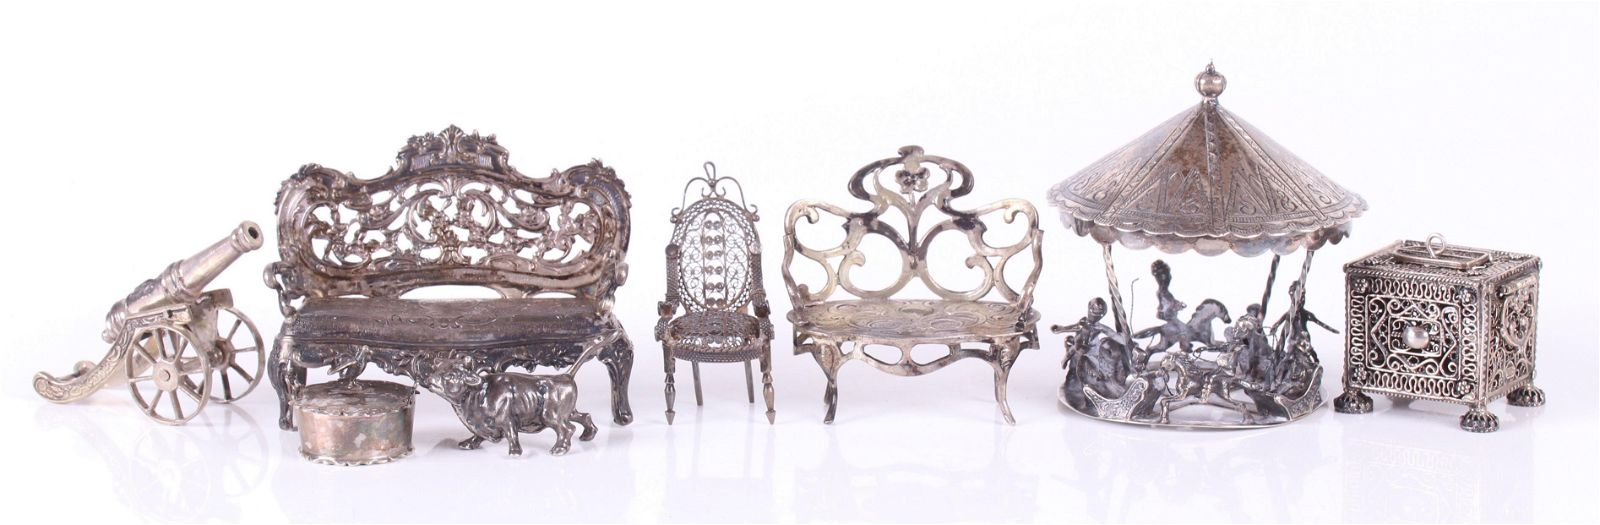 A Group of Miniature Silver Items, Toys